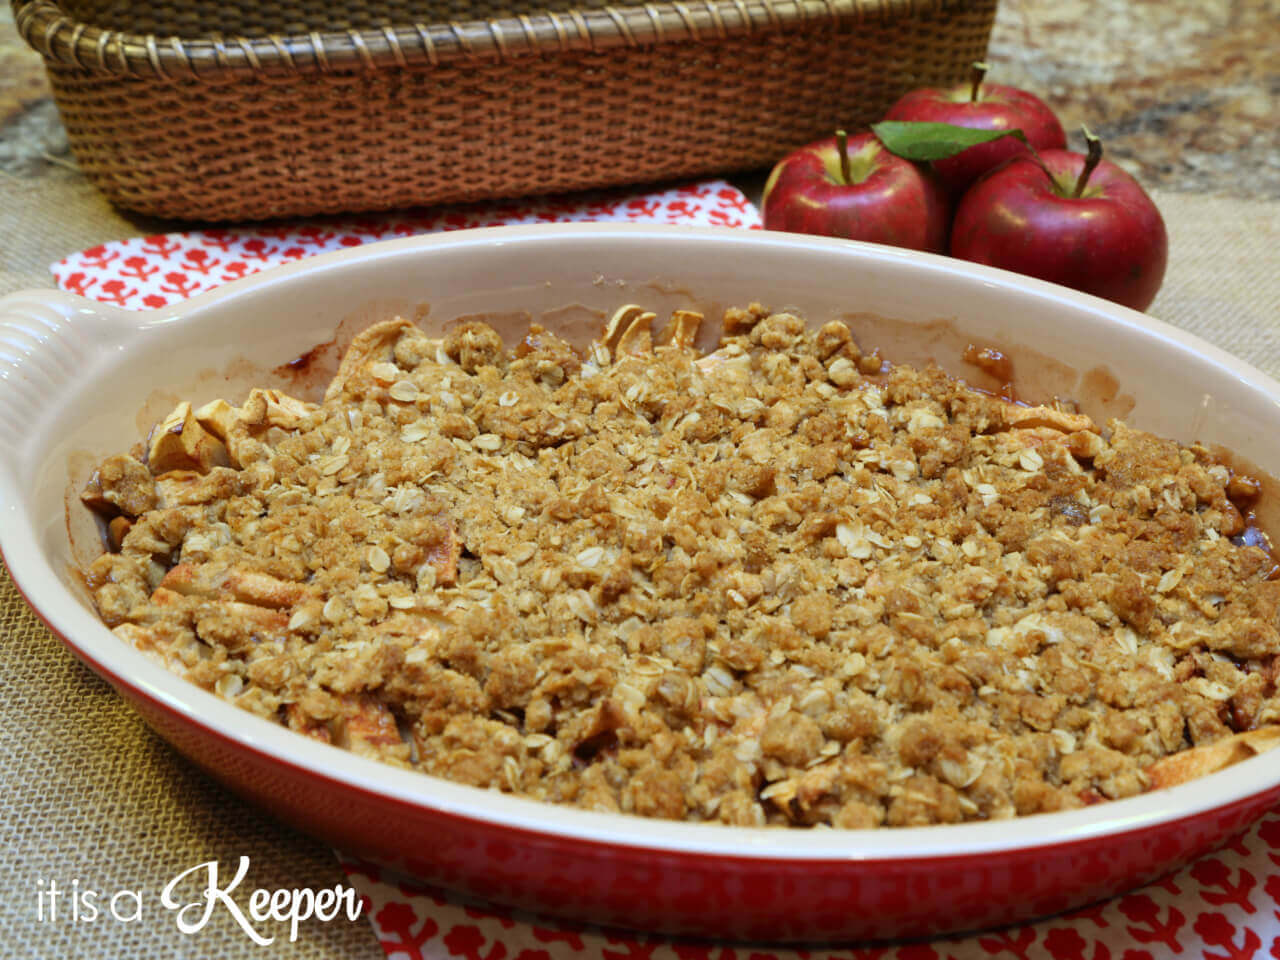 Apple Crisp in a red pan